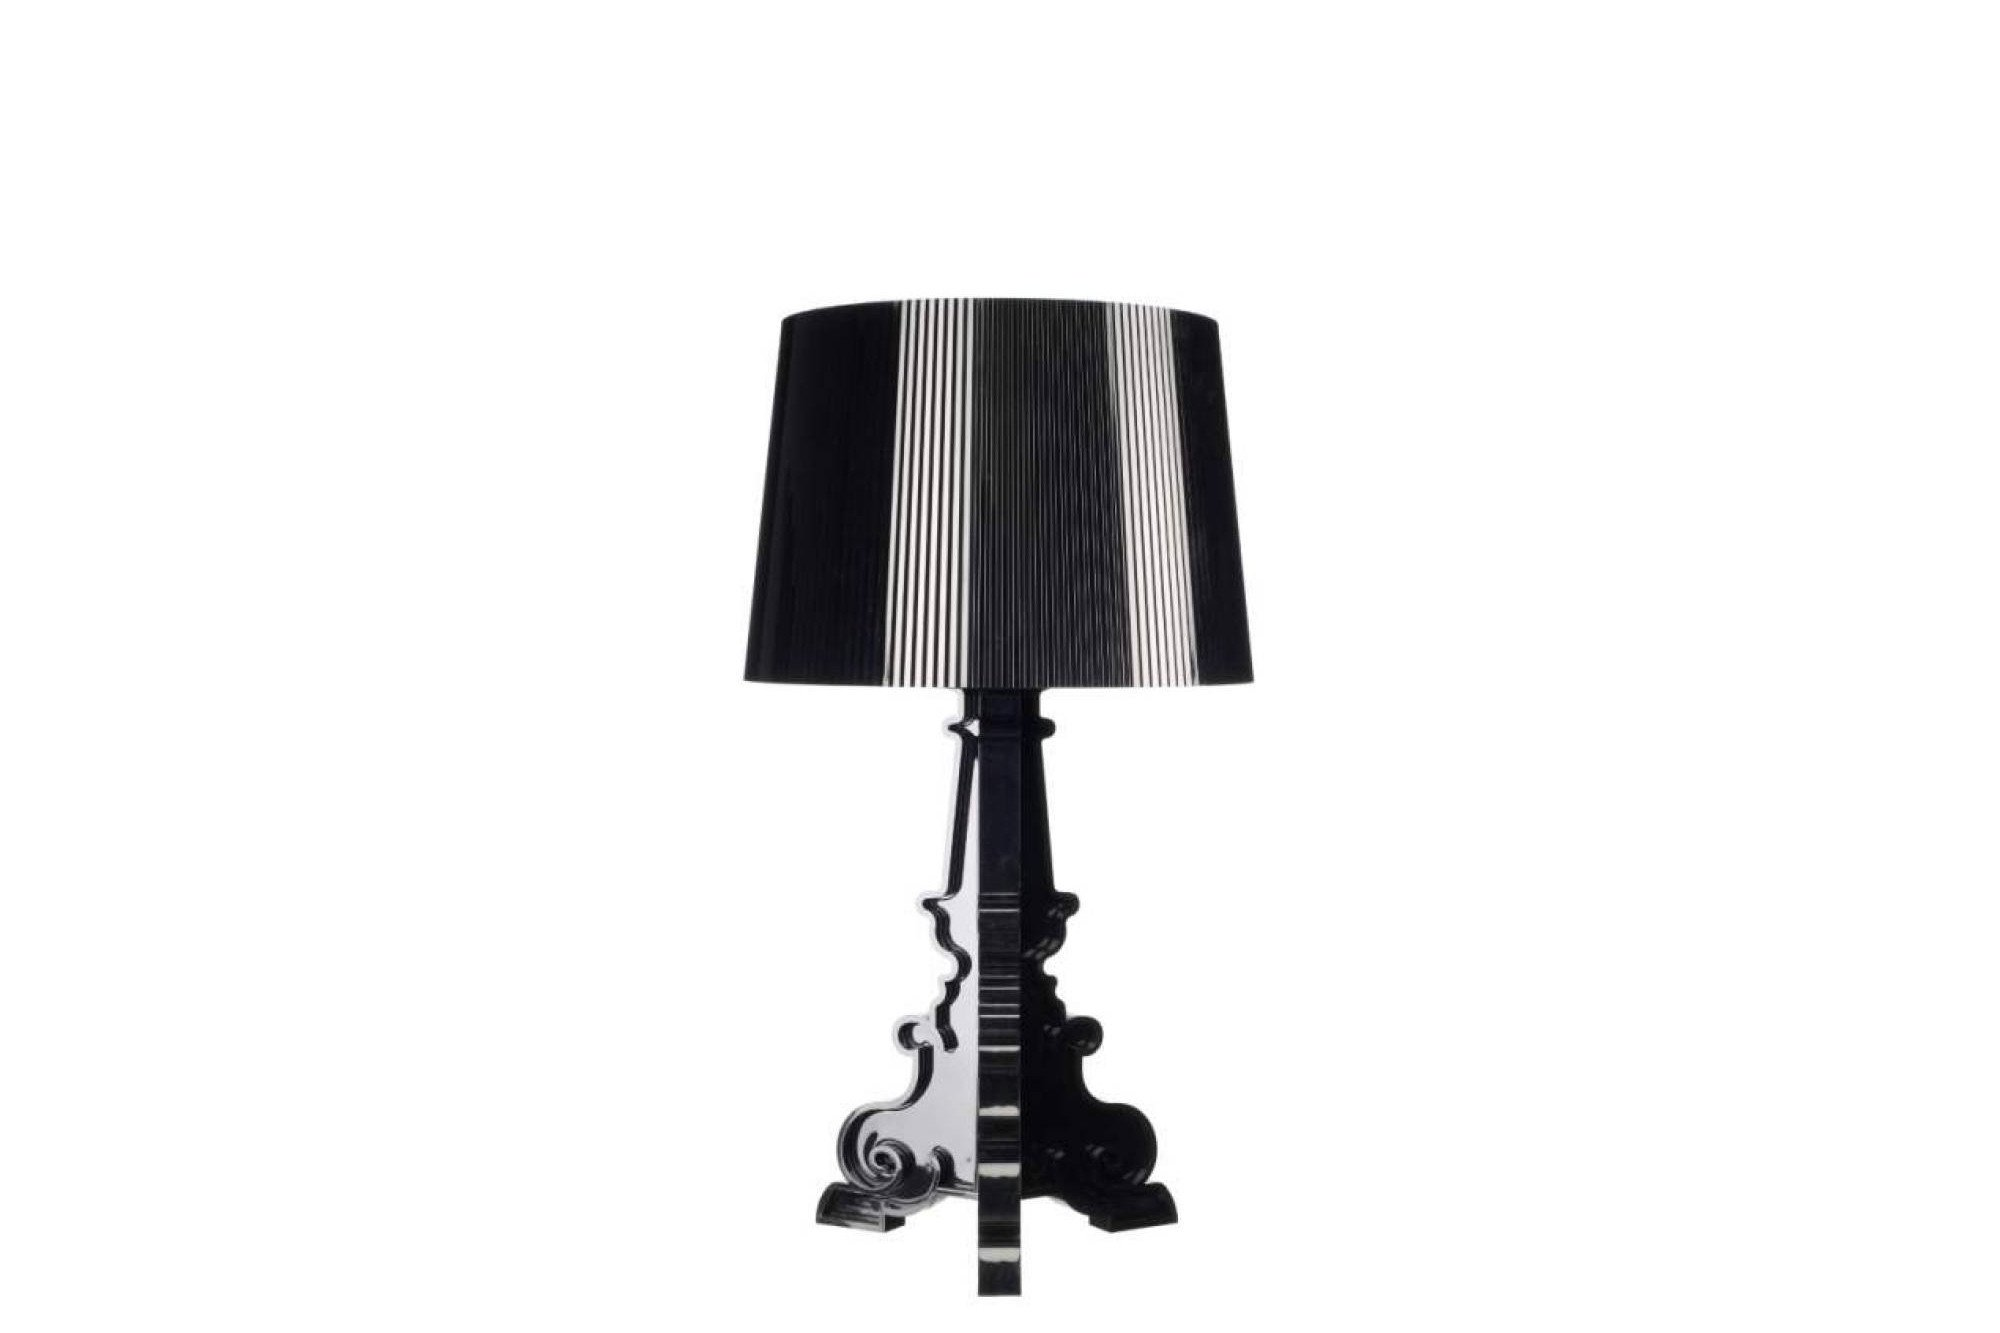 Bourgie Tafellamp Kartell : Kartell bourgie table lamp baroque lamps